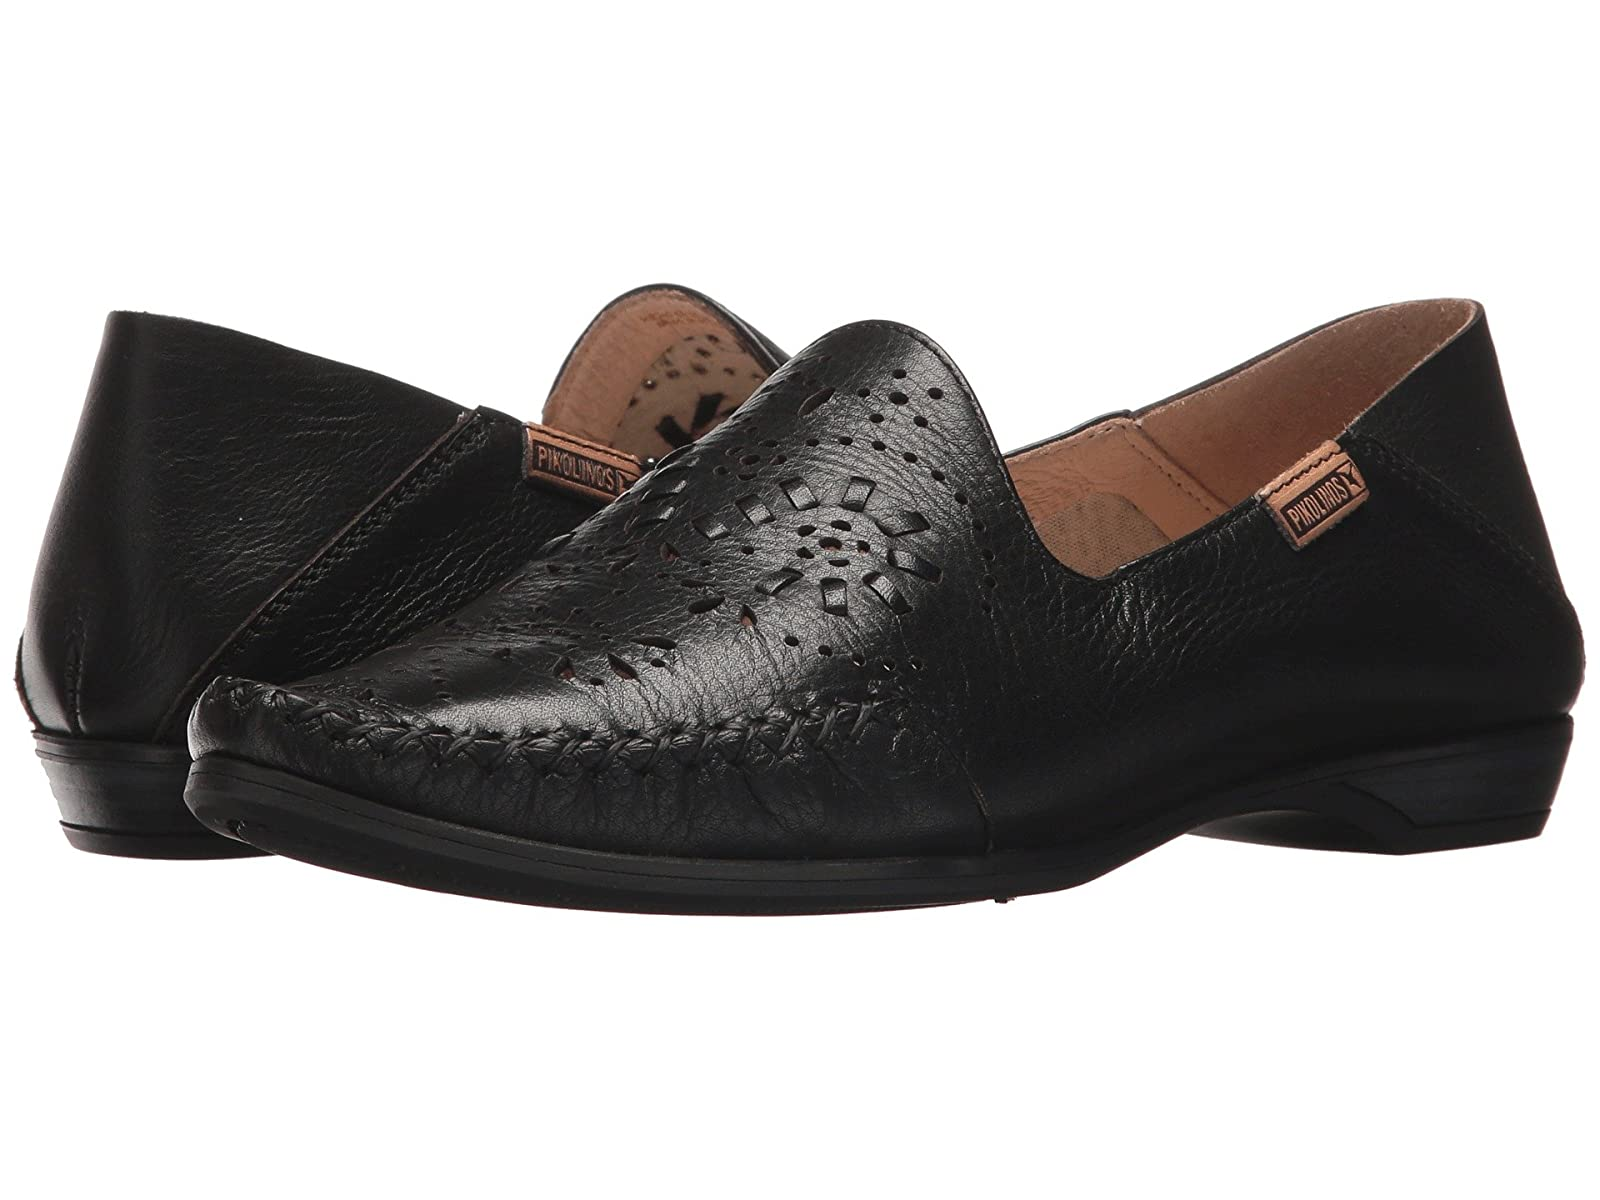 Pikolinos Bari W0S-4679Cheap and distinctive eye-catching shoes